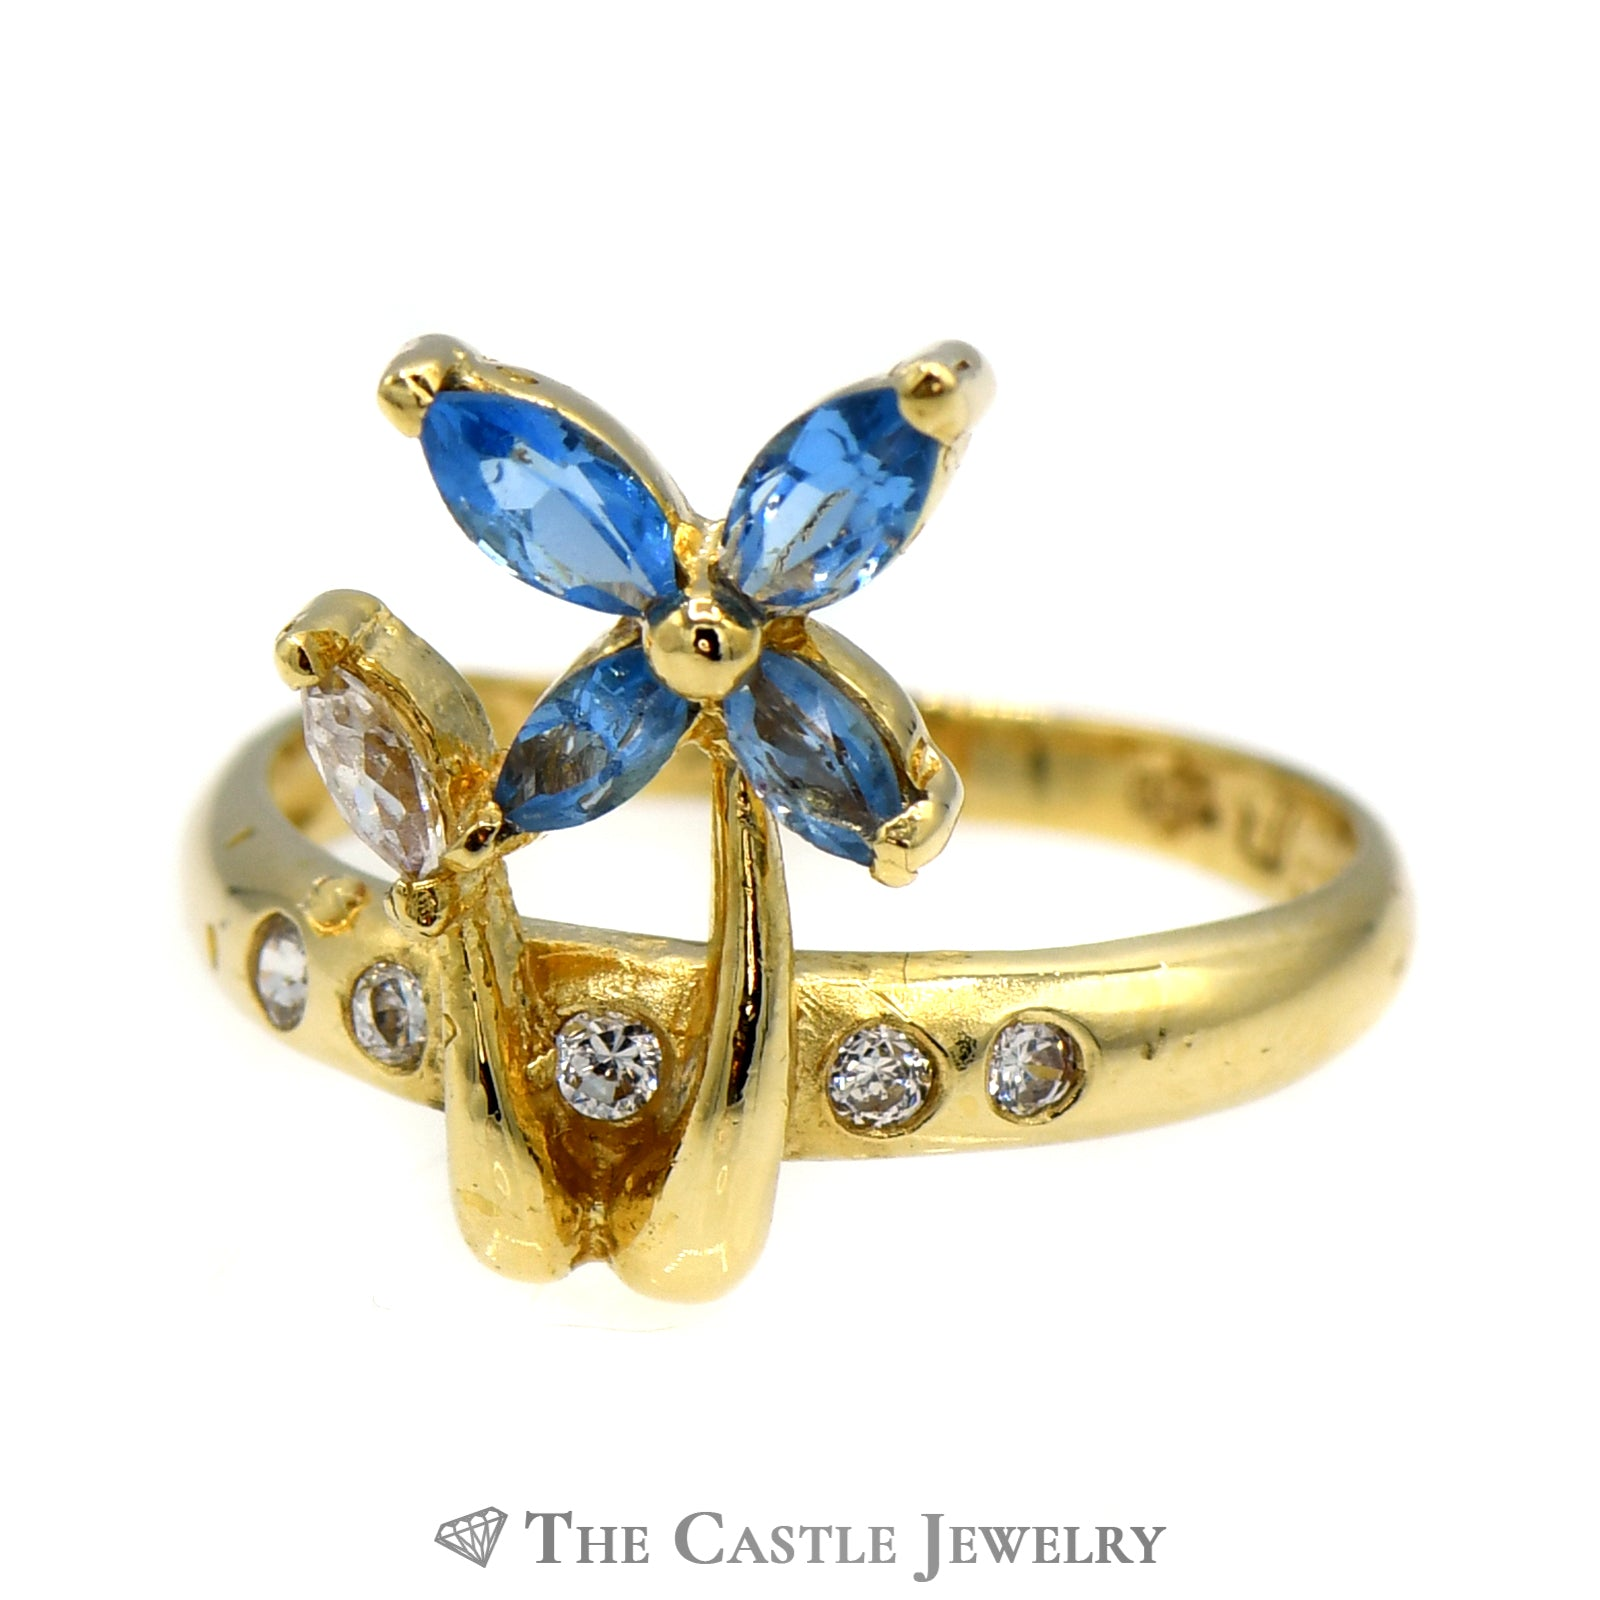 Blue Topaz & Cubic Zirconia Flower Designed Ring in 18k Yellow Gold